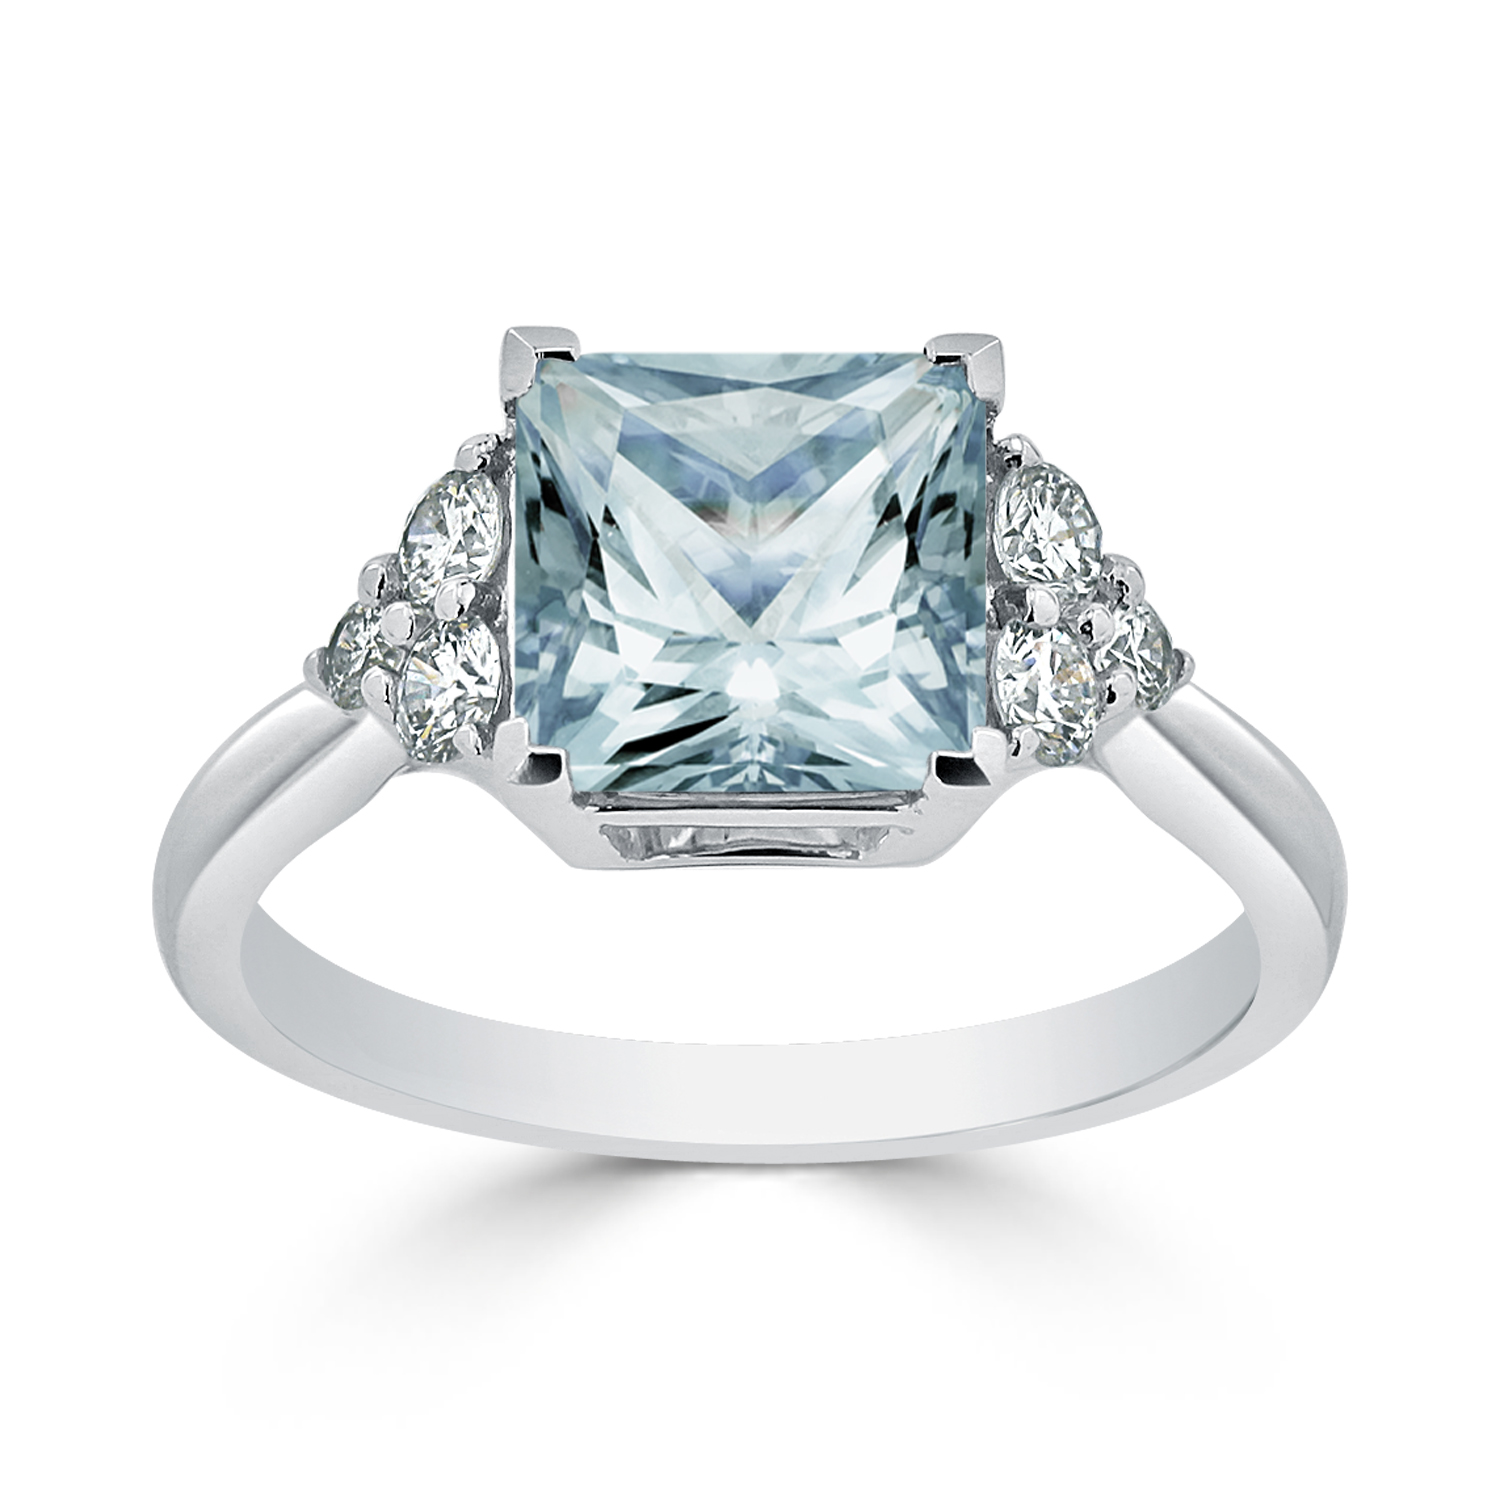 Halo Aquamarine Diamond Ring in 14K White Gold with 2.10 carat Princess Aquamarine